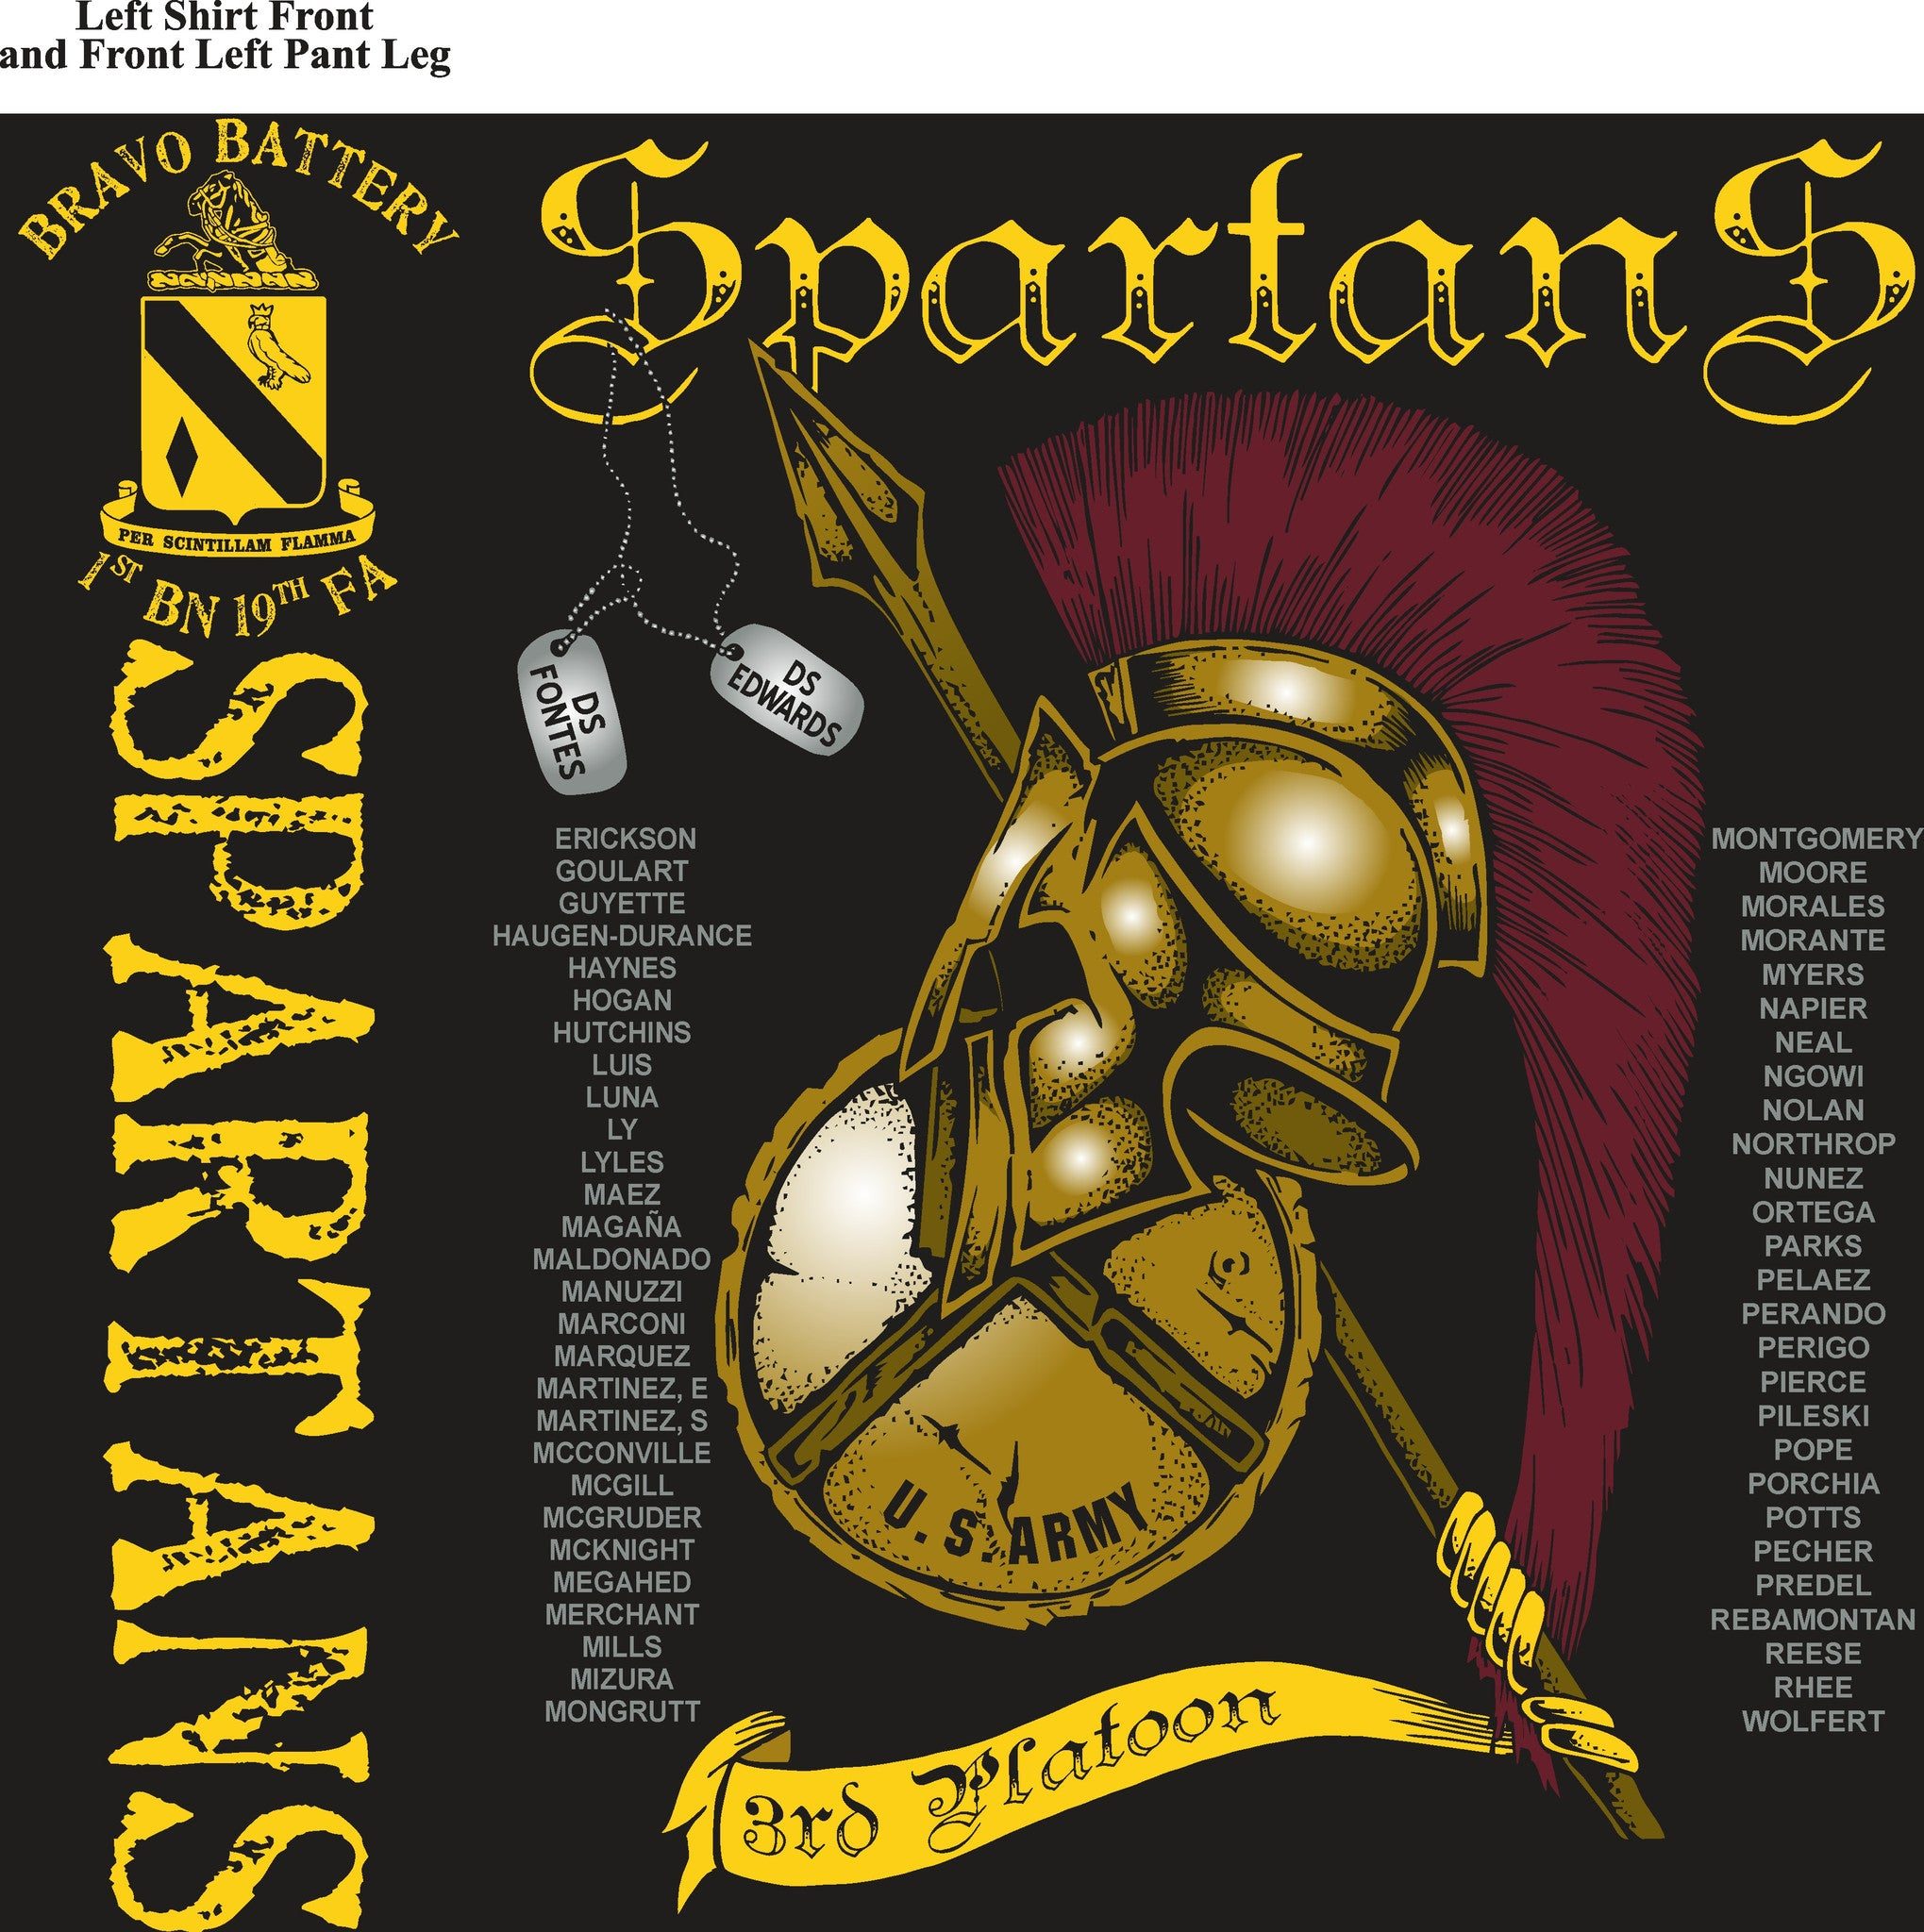 Platoon Shirts BRAVO 1st 19th SPARTANS JAN 2015